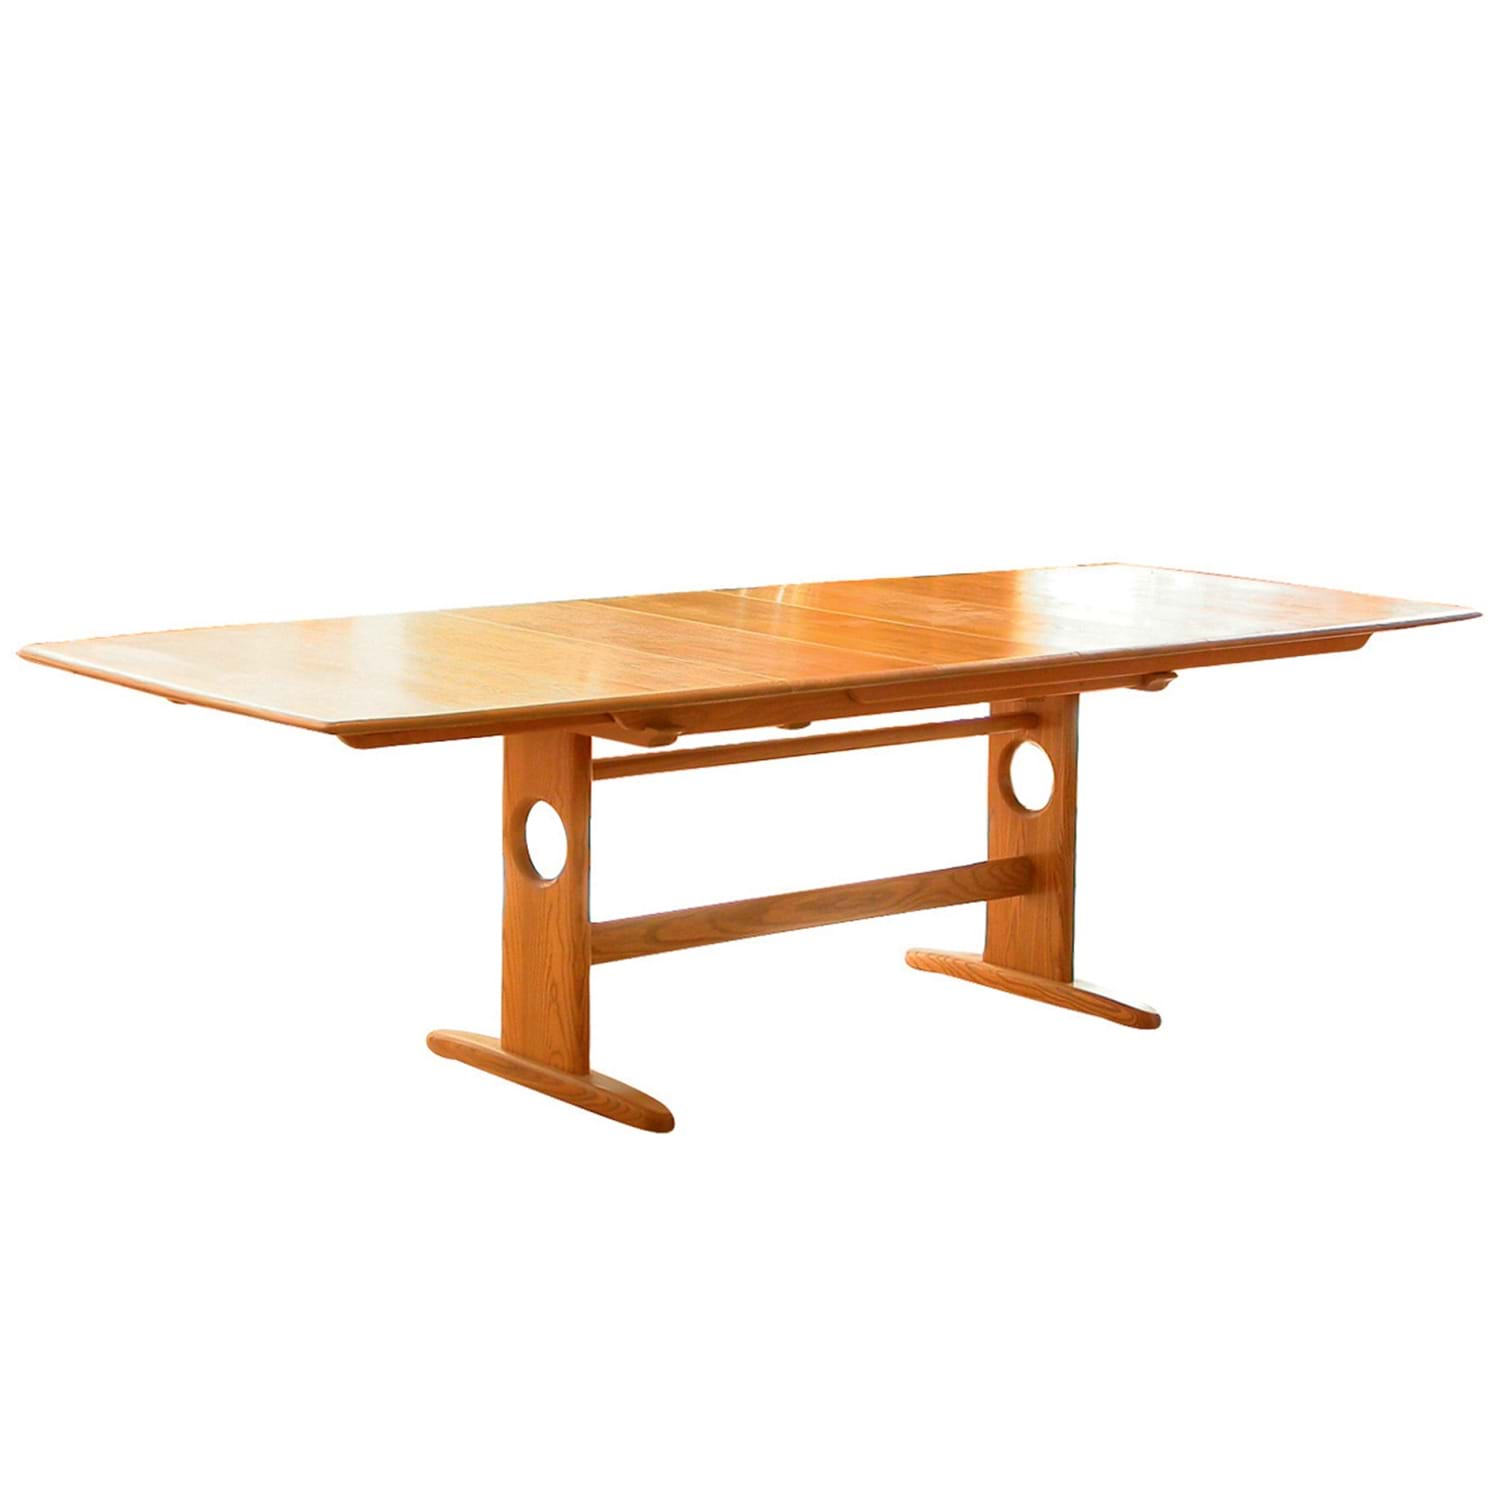 Image of Ercol Windsor Large Dining Table